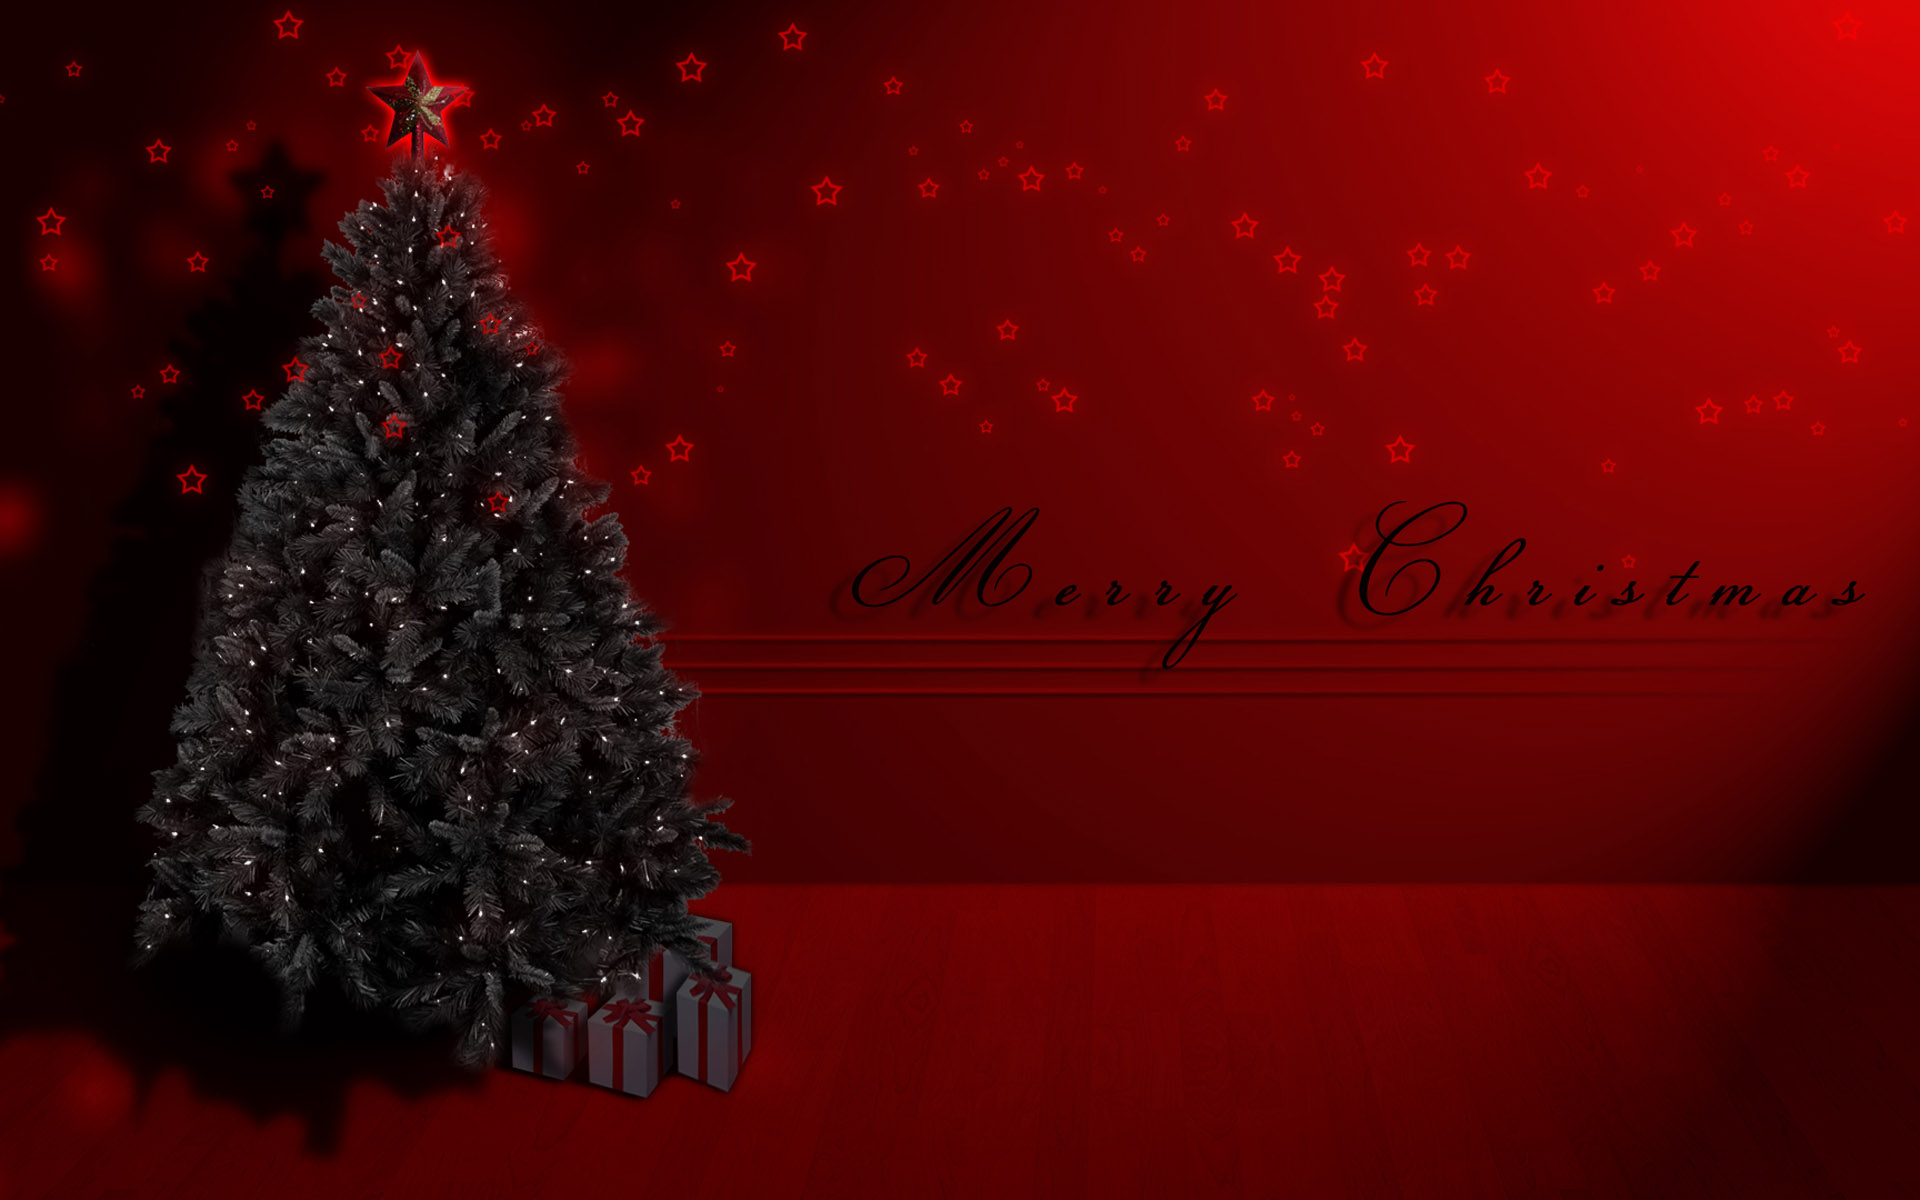 Christmas wallpaper high definition 27031